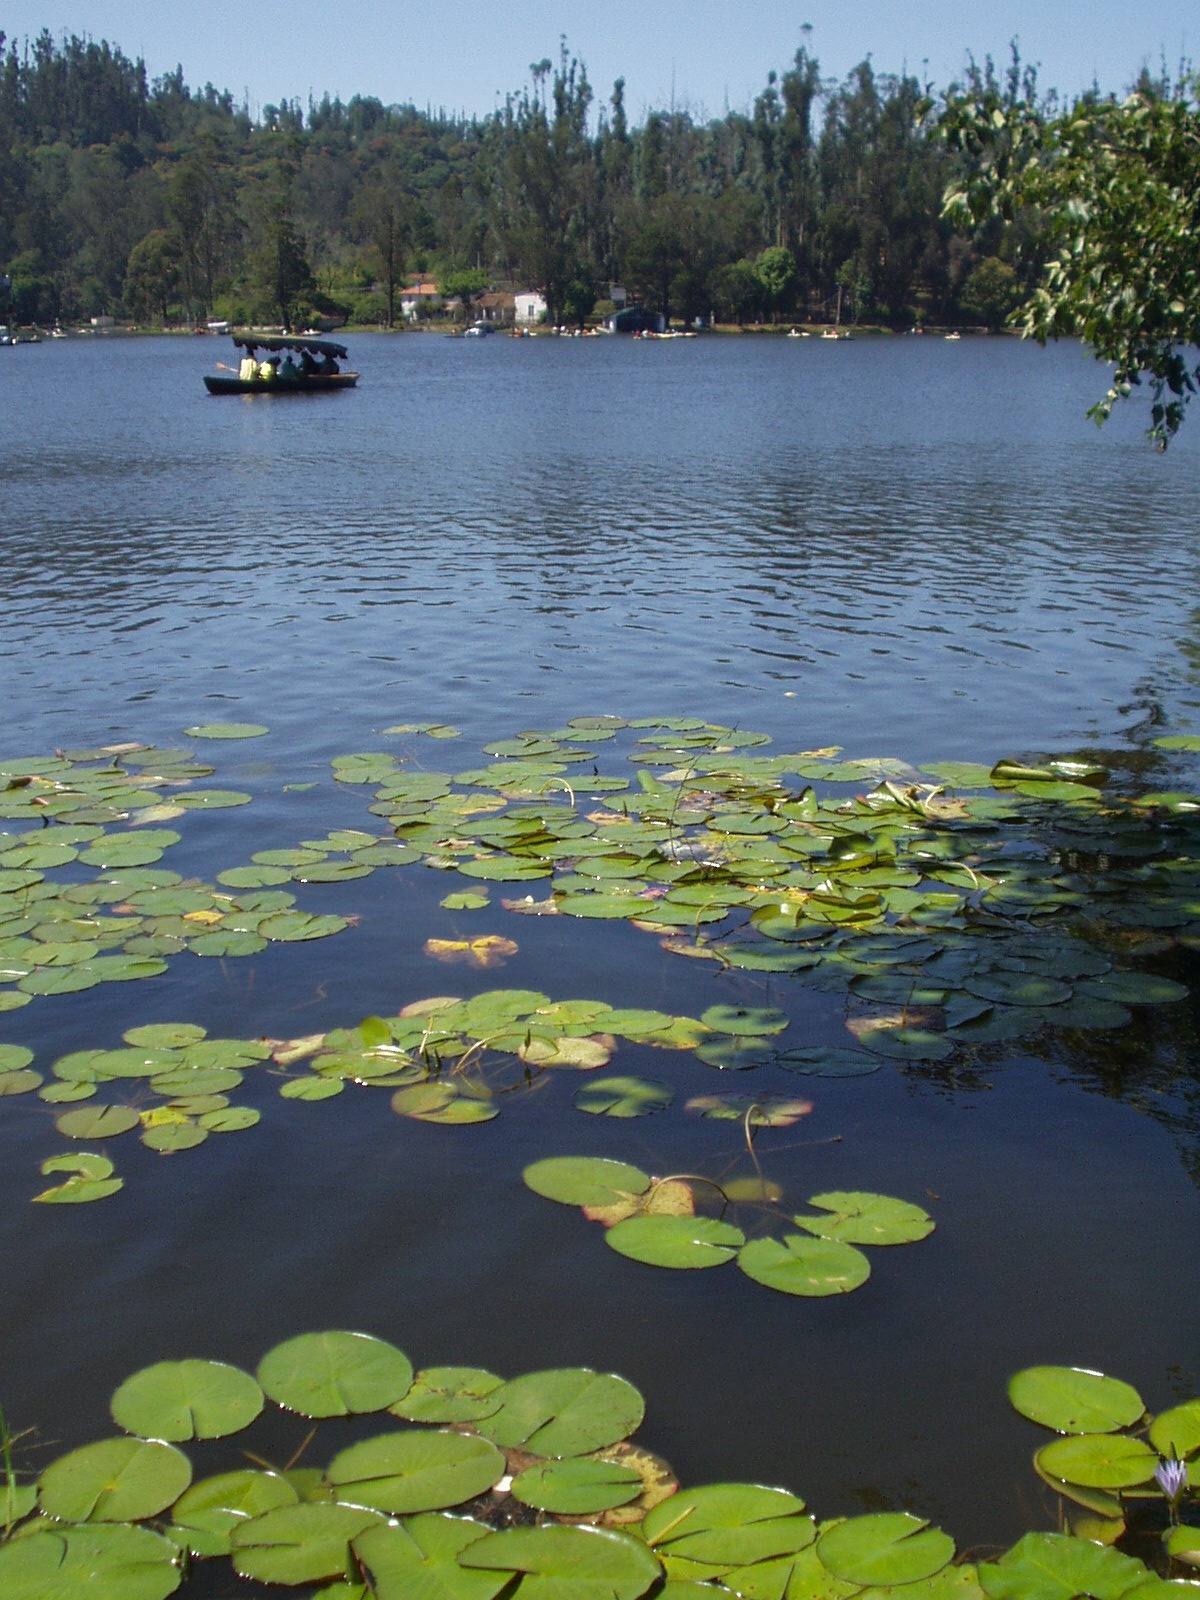 Kodaikanal India  city pictures gallery : Original file ‎ 1,200 × 1,600 pixels, file size: 580 KB, MIME type ...